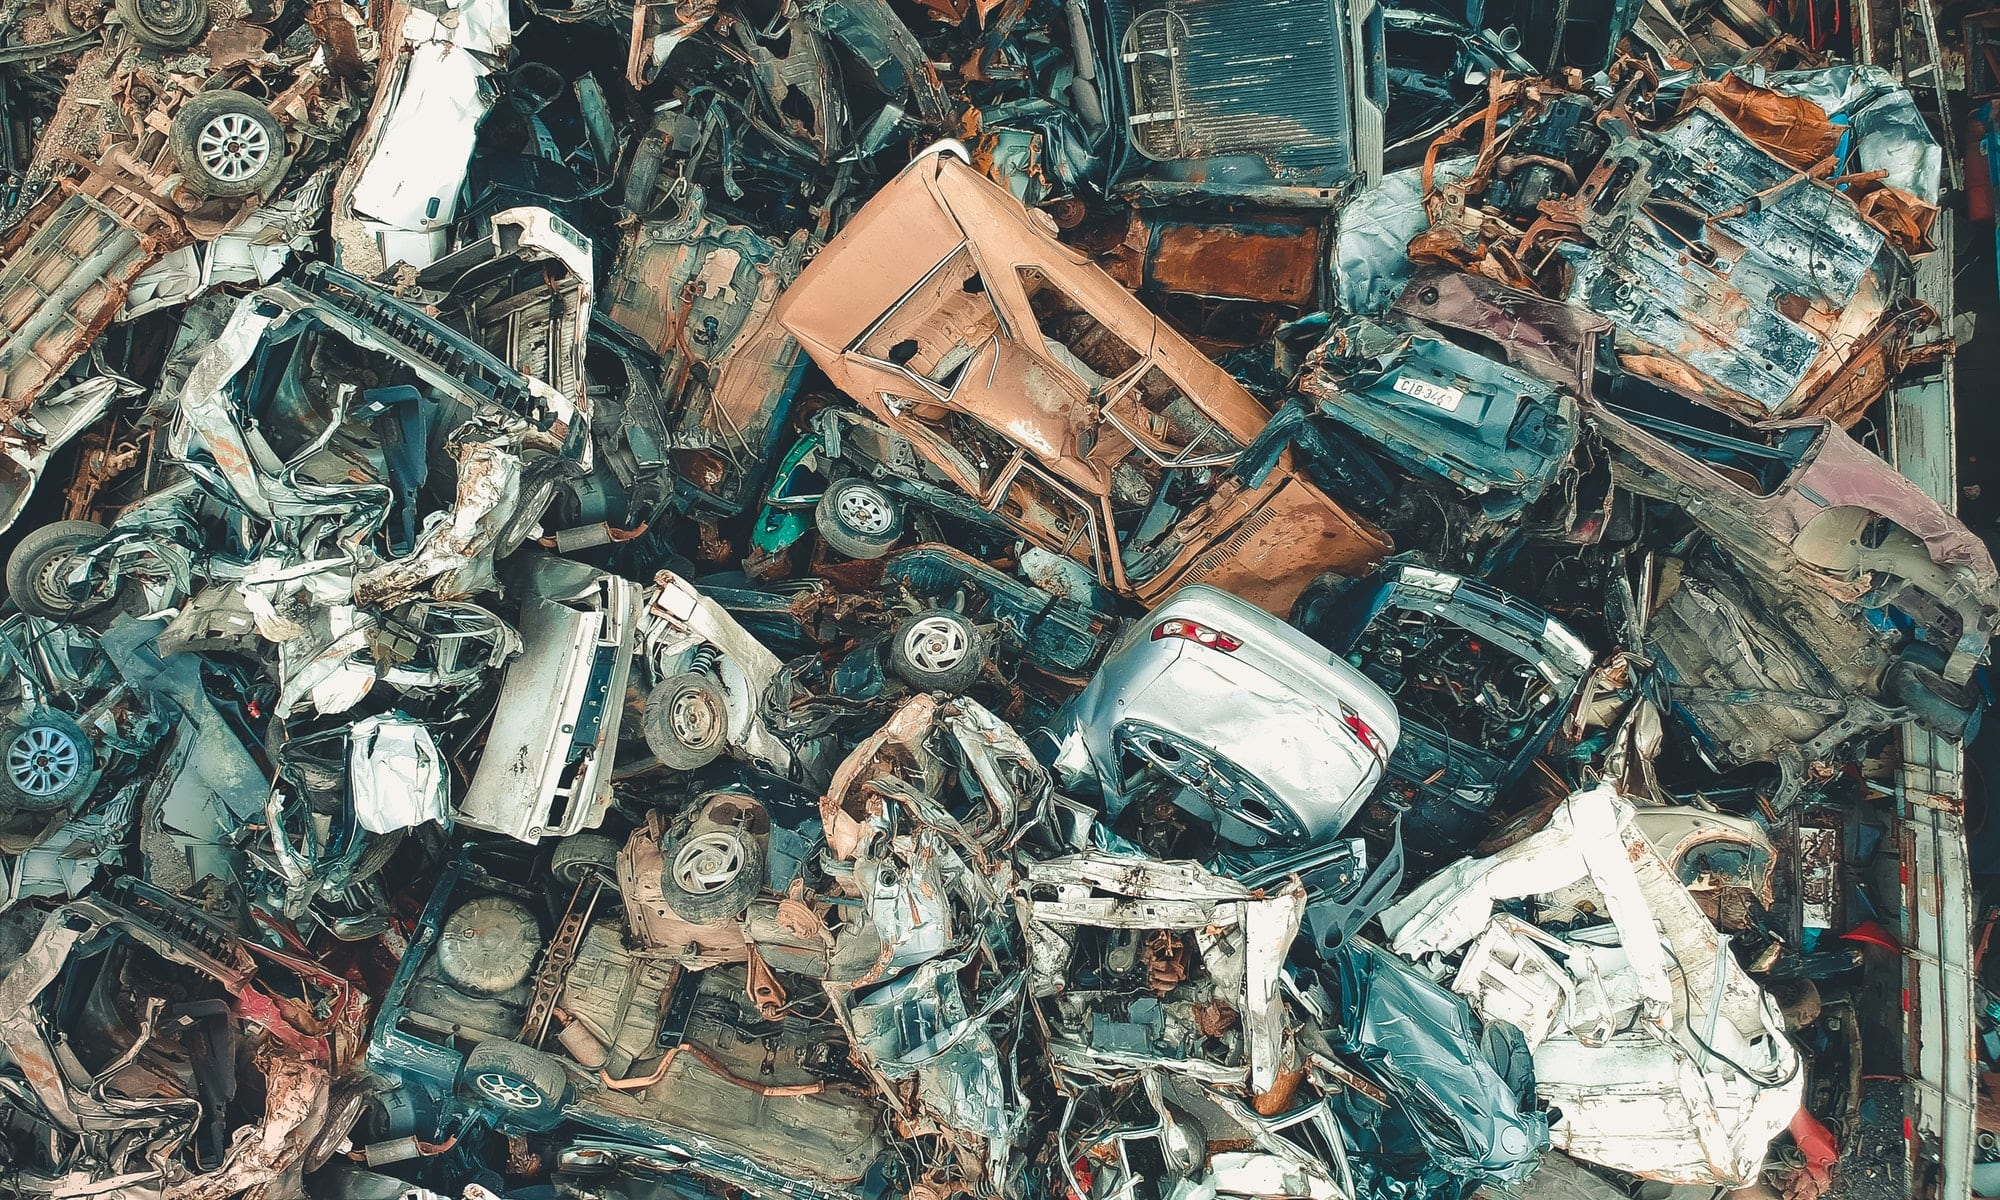 Crushed Cars